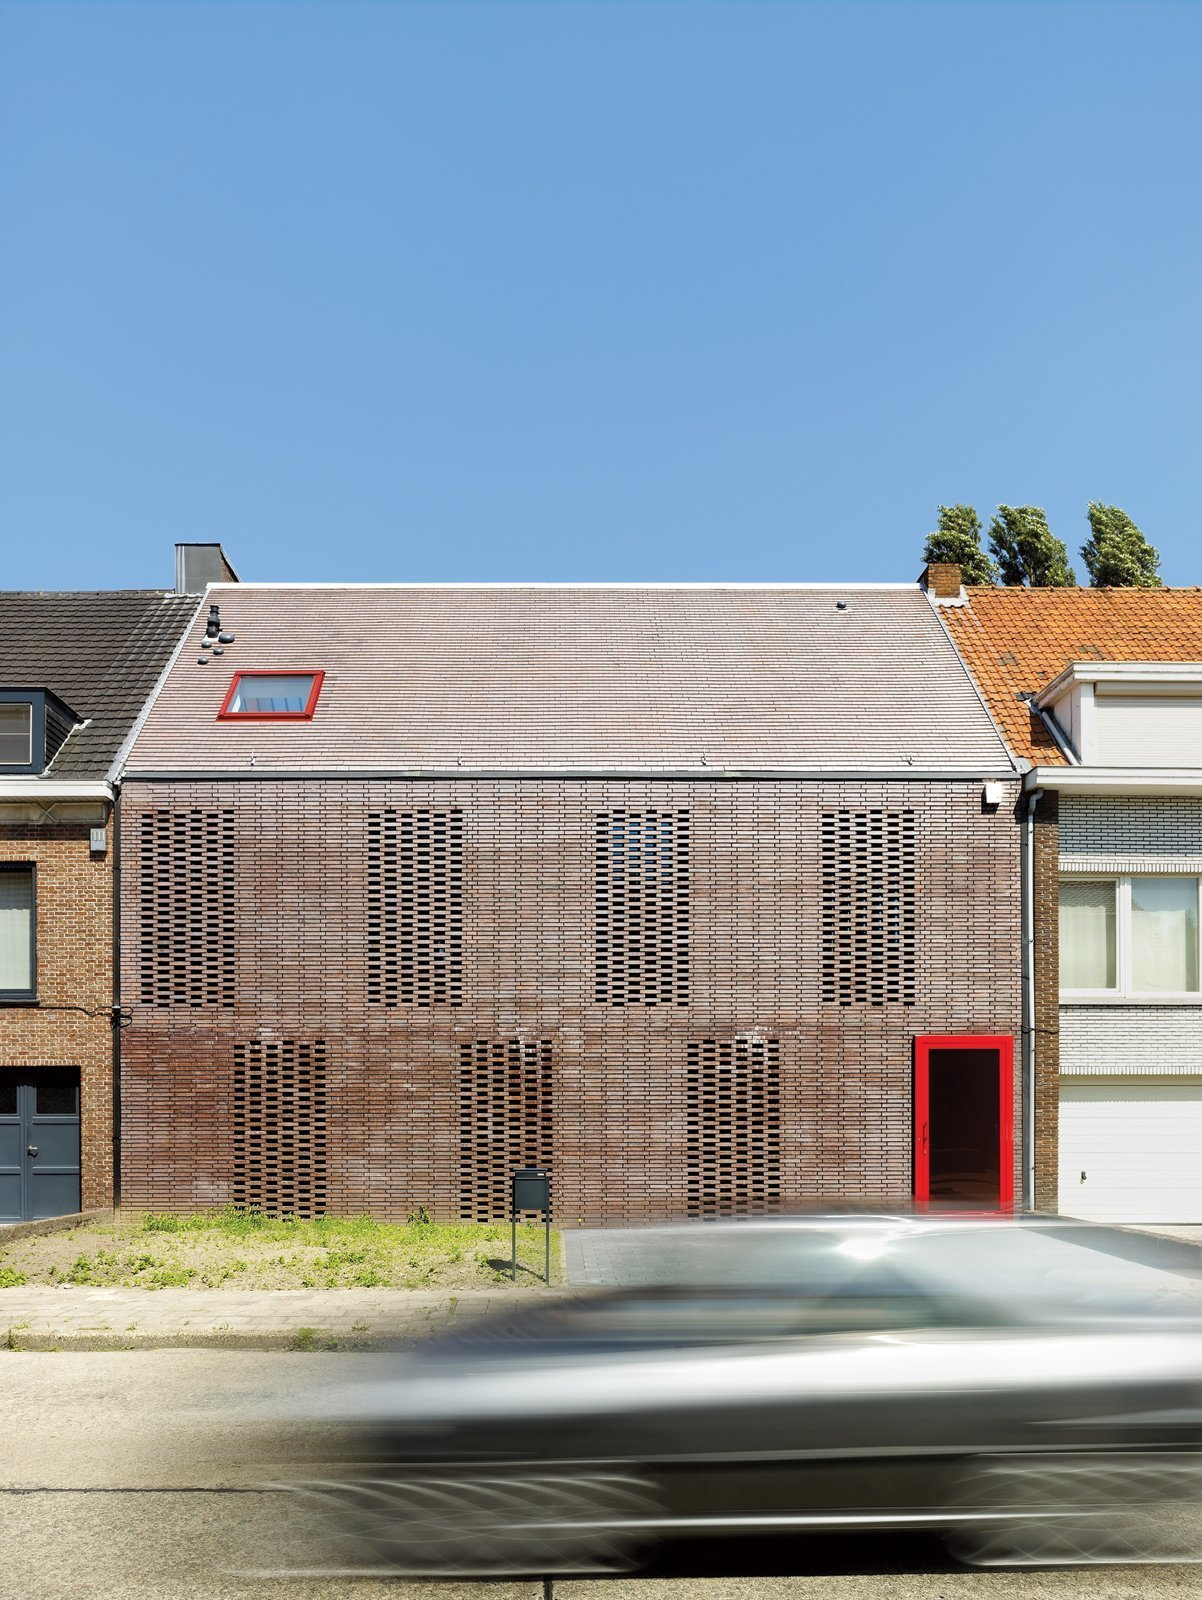 """To provide maxizing privacy and natural light penetration for their clients, Belgium-based DMVA Architects created a frontage composed of """"knitted"""" bricks, which bring light and air into the home."""